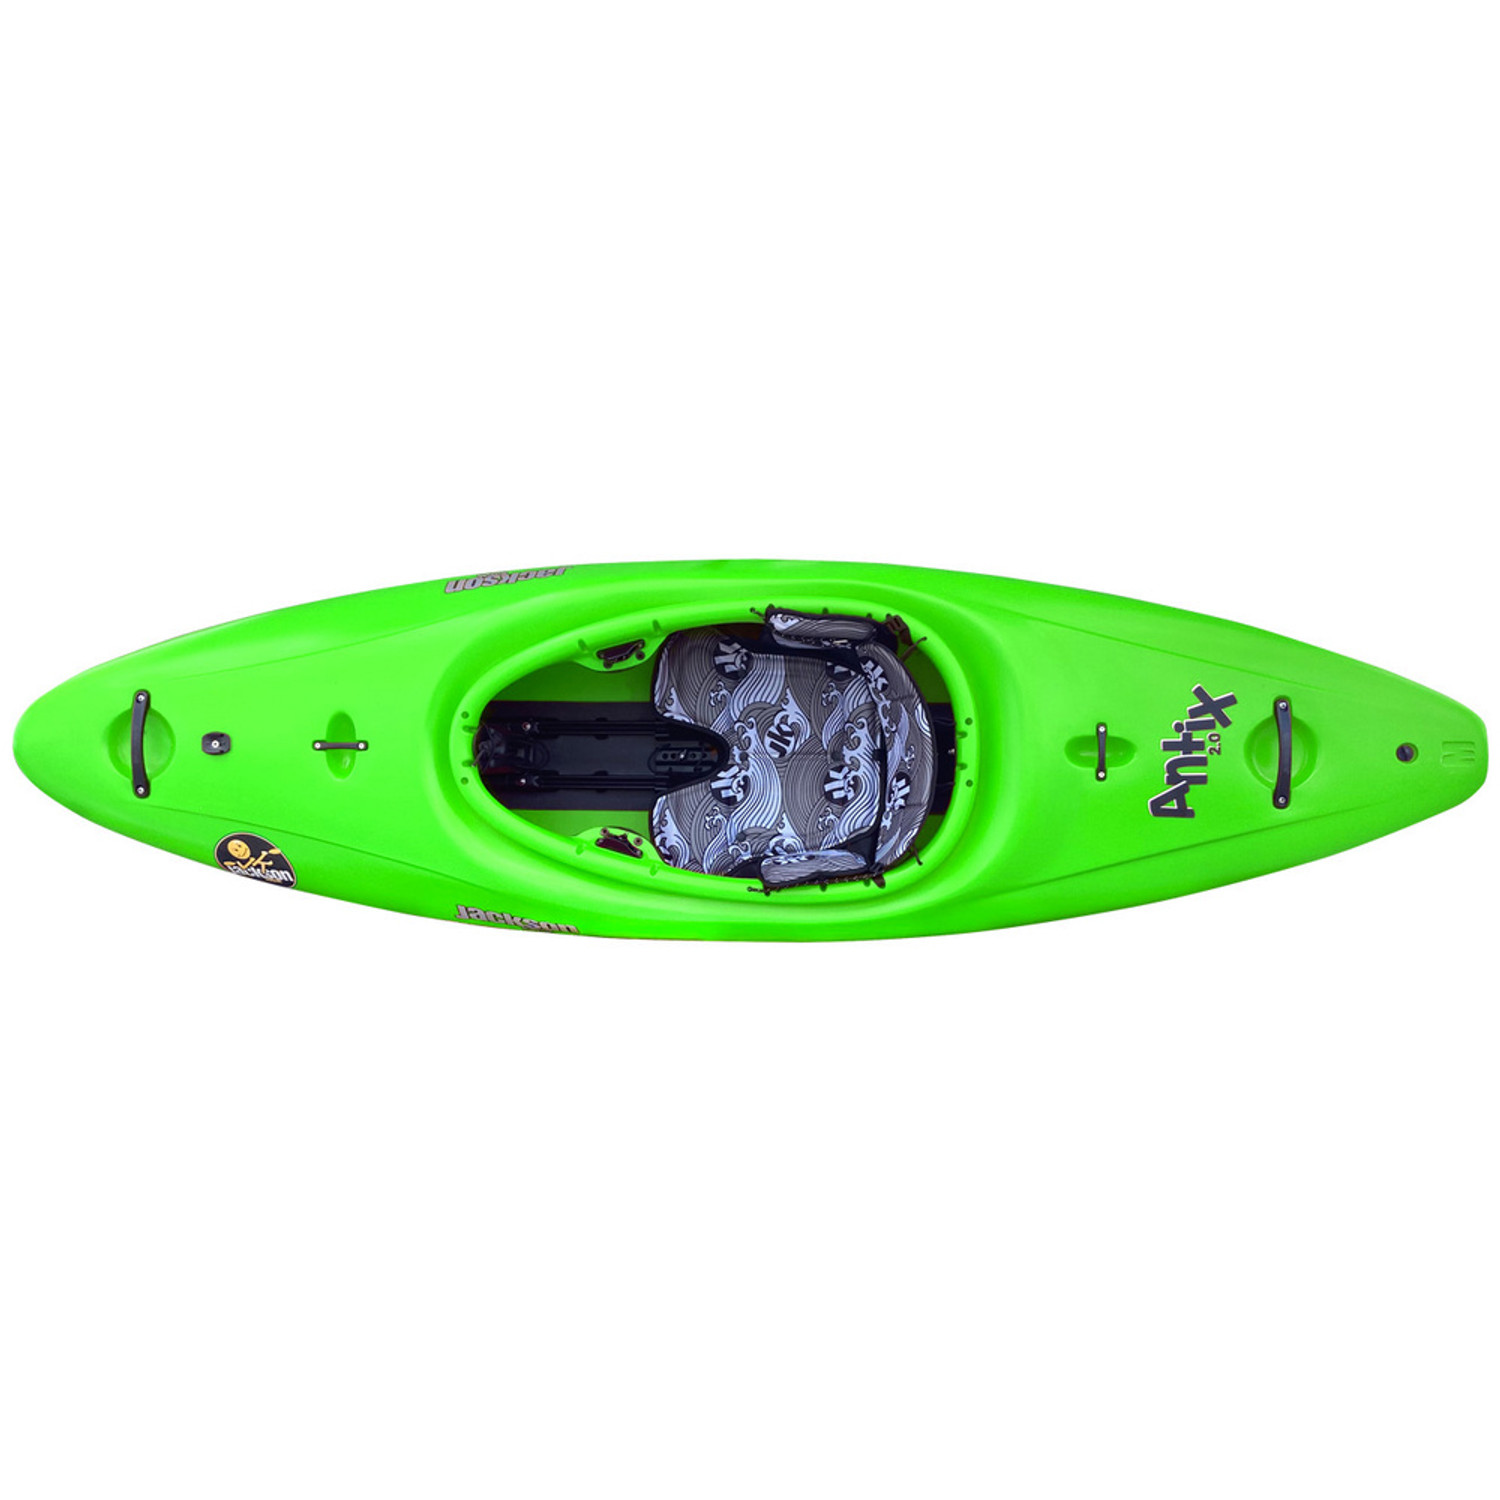 Antix 2.0 - Small - Lime - Top   Western Canoeing & Kayaking